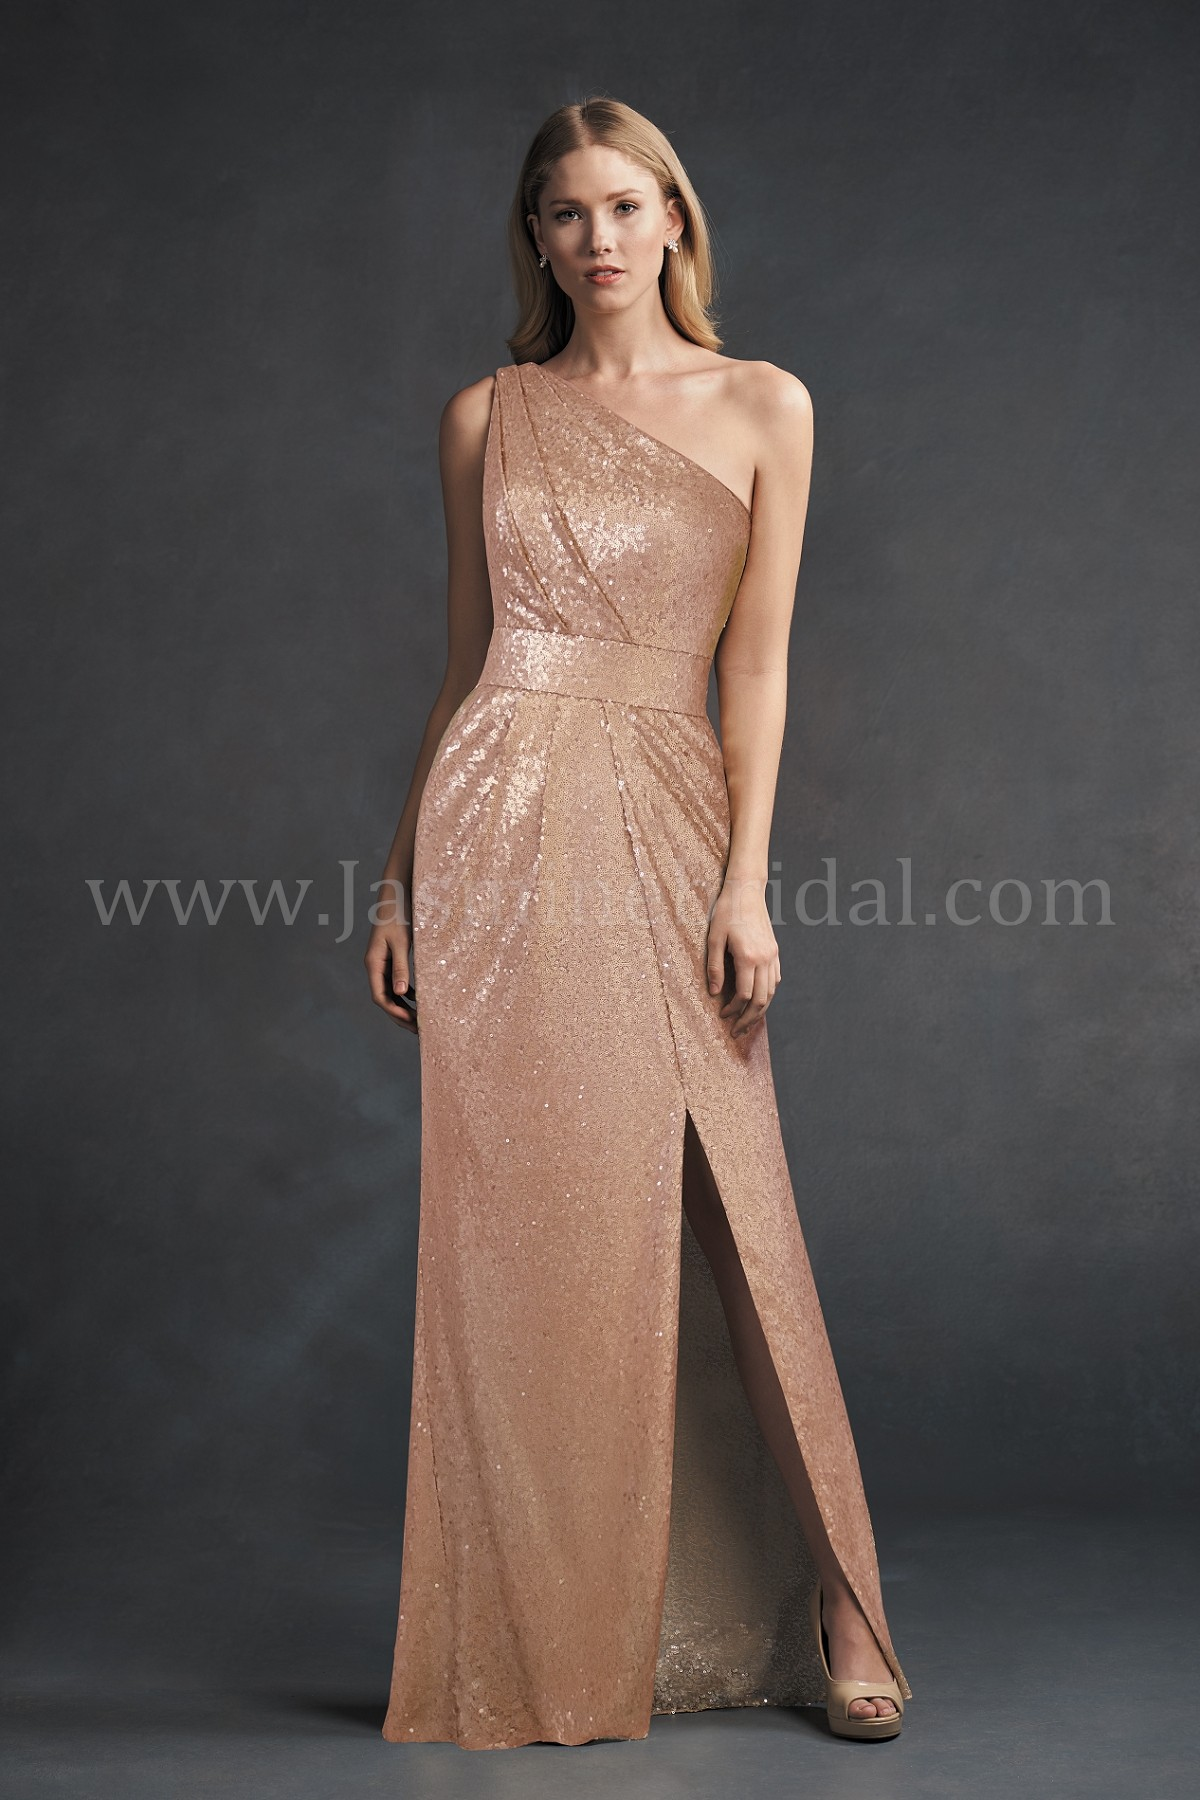 Gold bridesmaid dresses the right color theme from jasmine bridal dressimg ombrellifo Image collections